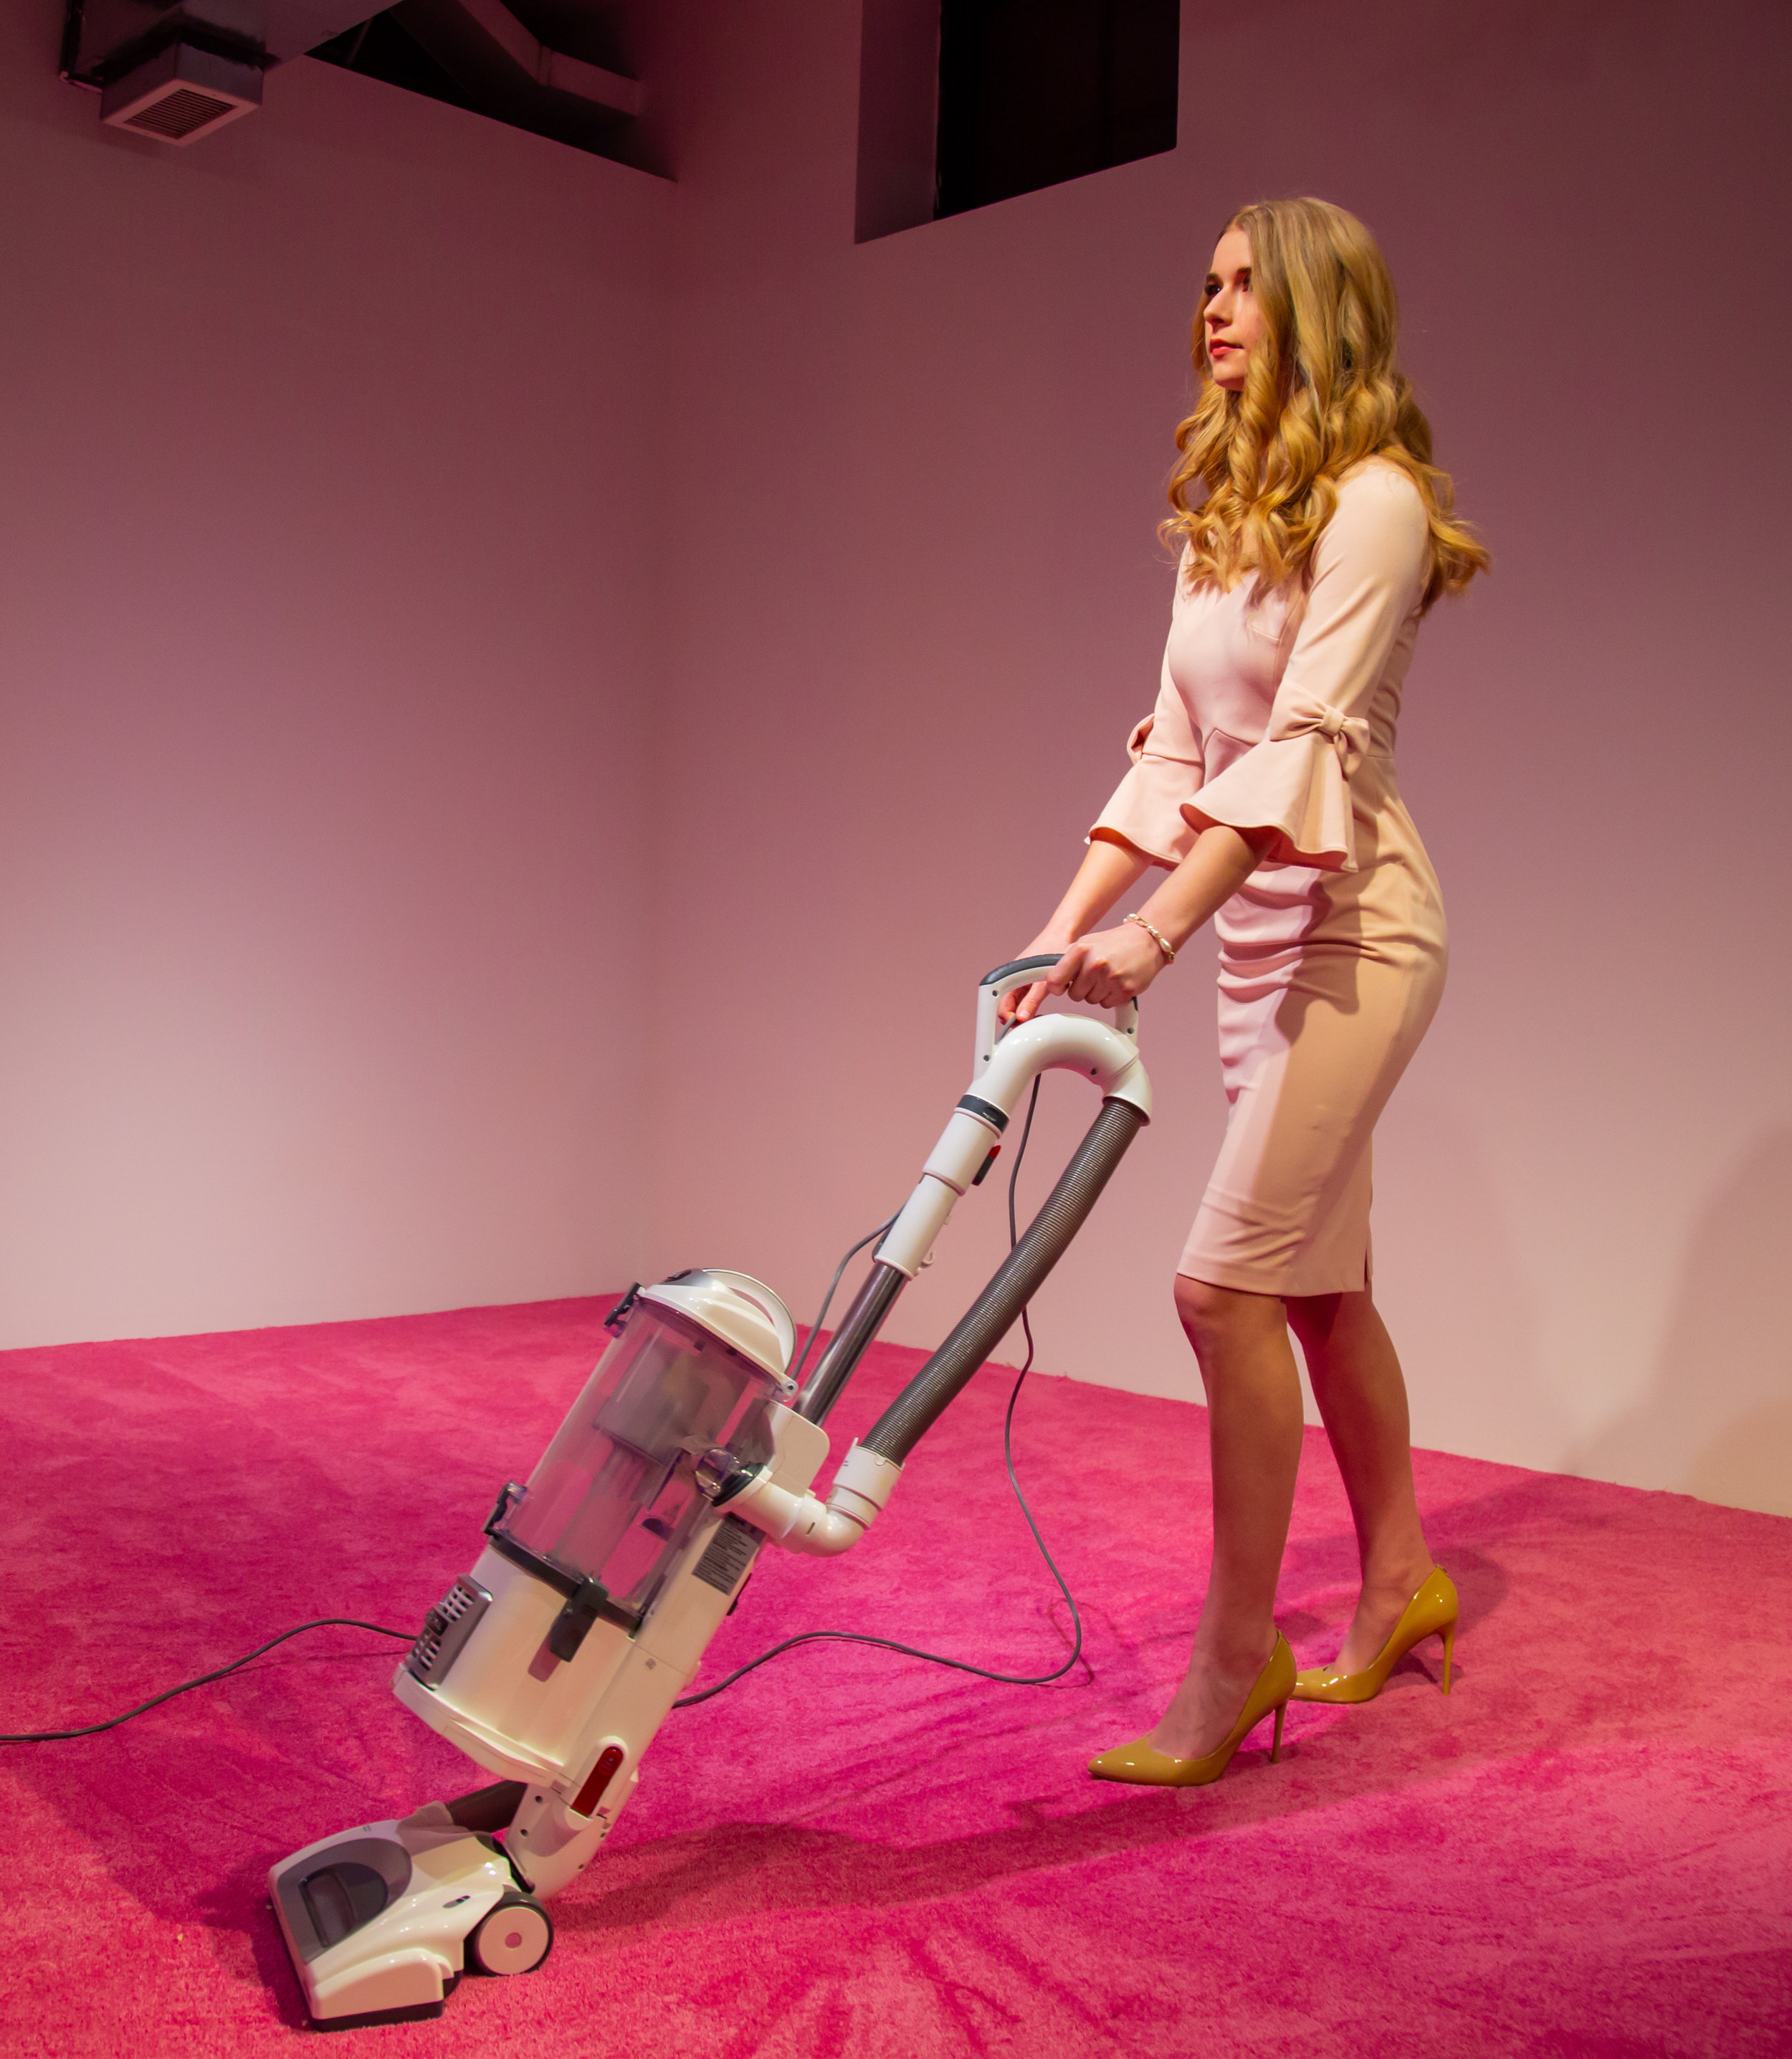 Artist Jennifer Rubell Is Inviting Audiences to Throw Crumbs at an Ivanka Trump Lookalike While She Vacuums Them Up - artnet news, February 1, 2019